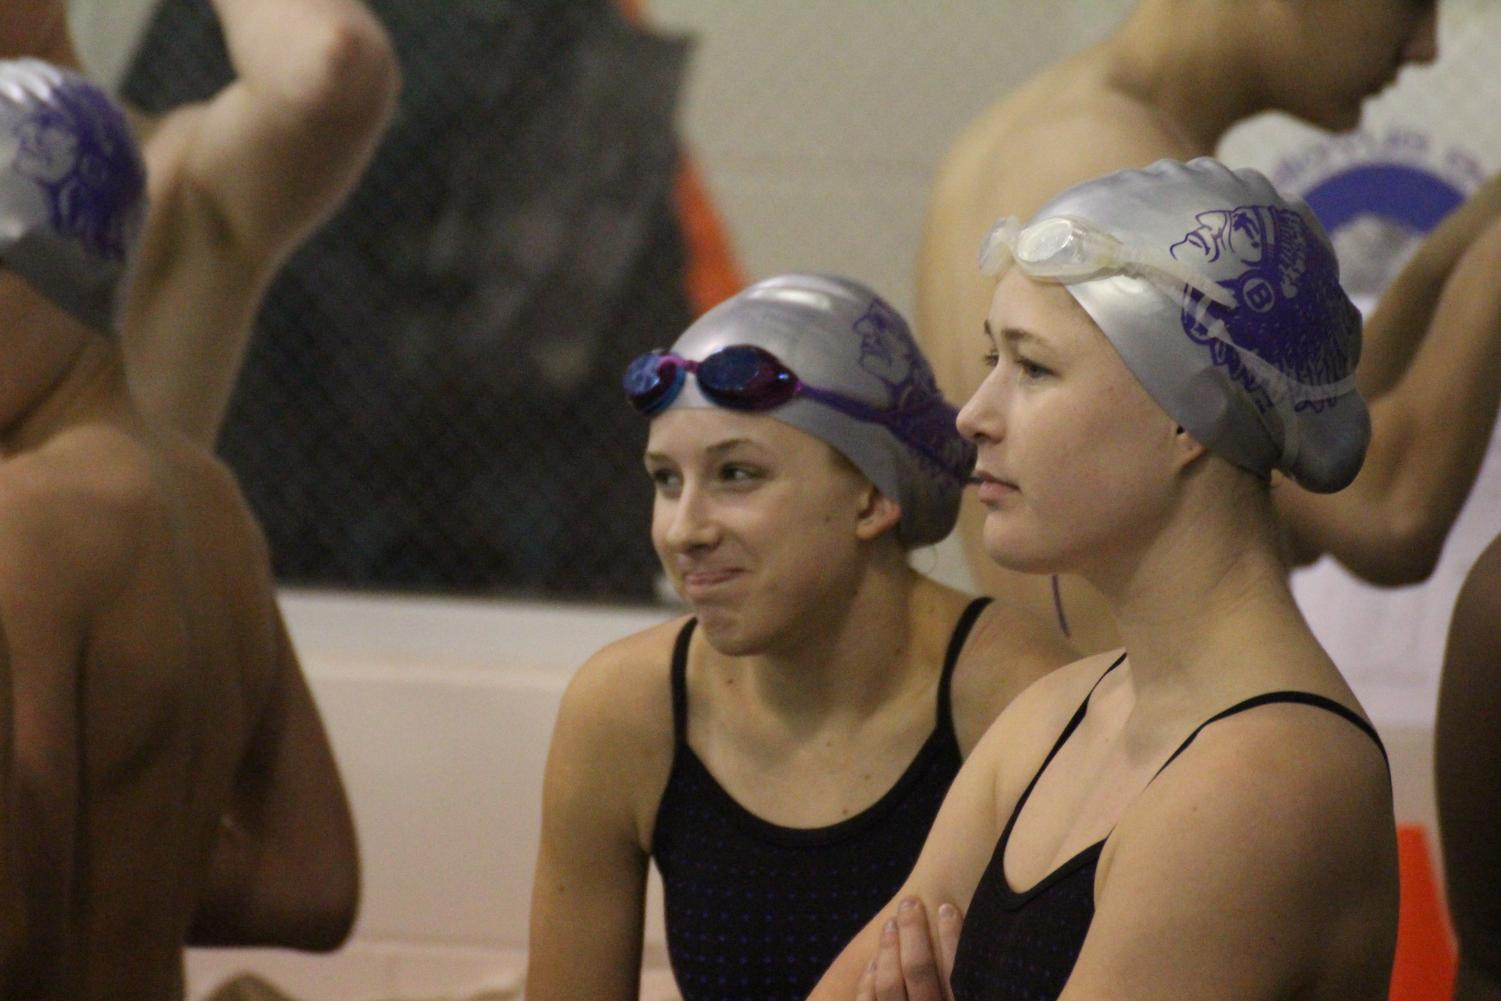 Elise Lutz and Madison Nash watch their teammates before their heat.